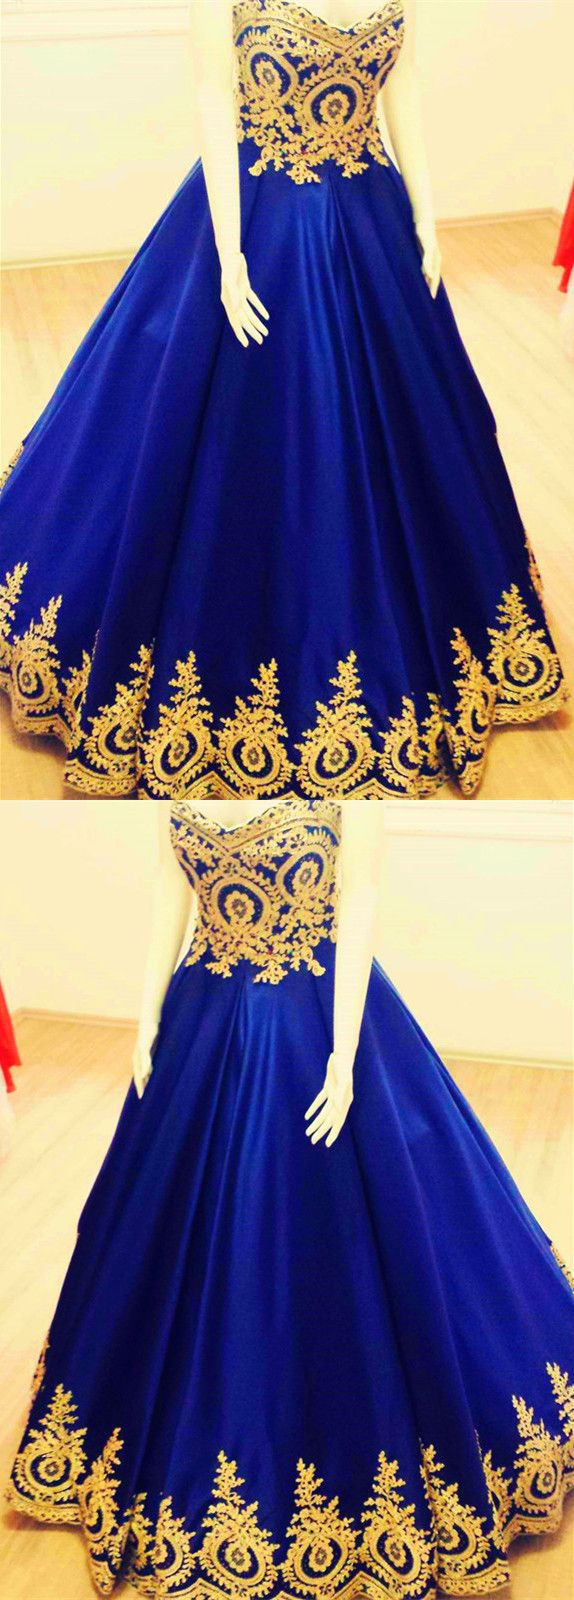 Royal Blue Quinceanera Dresses Sweet 16 Dress Gold Lace Appliques Ball Gowns Ball Gown Prom Dresses Sweet 16 Dresses Blue Wedding Dress Royal Ball Gowns [ 1600 x 574 Pixel ]